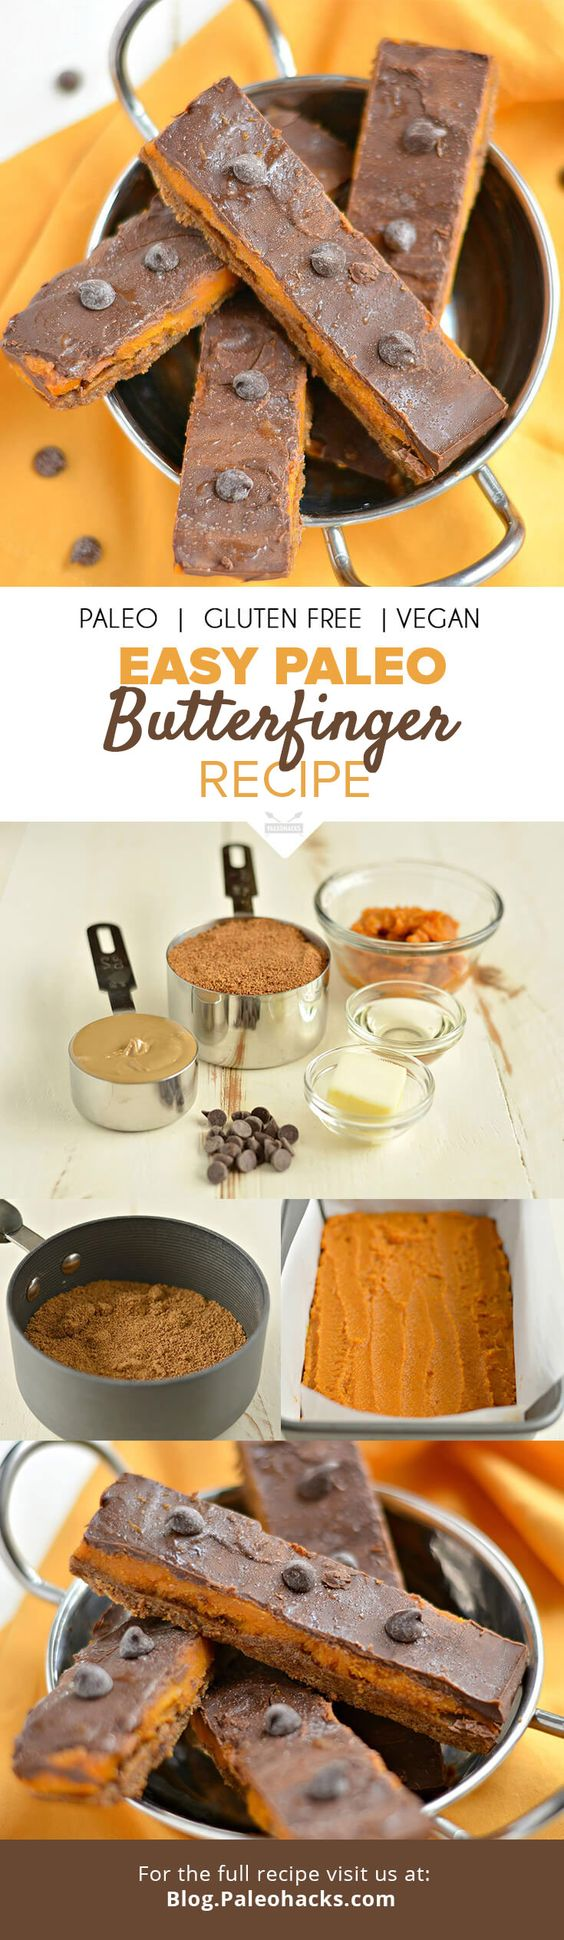 easy-paleo-butterfinger-recipe-gluten-free-vegan